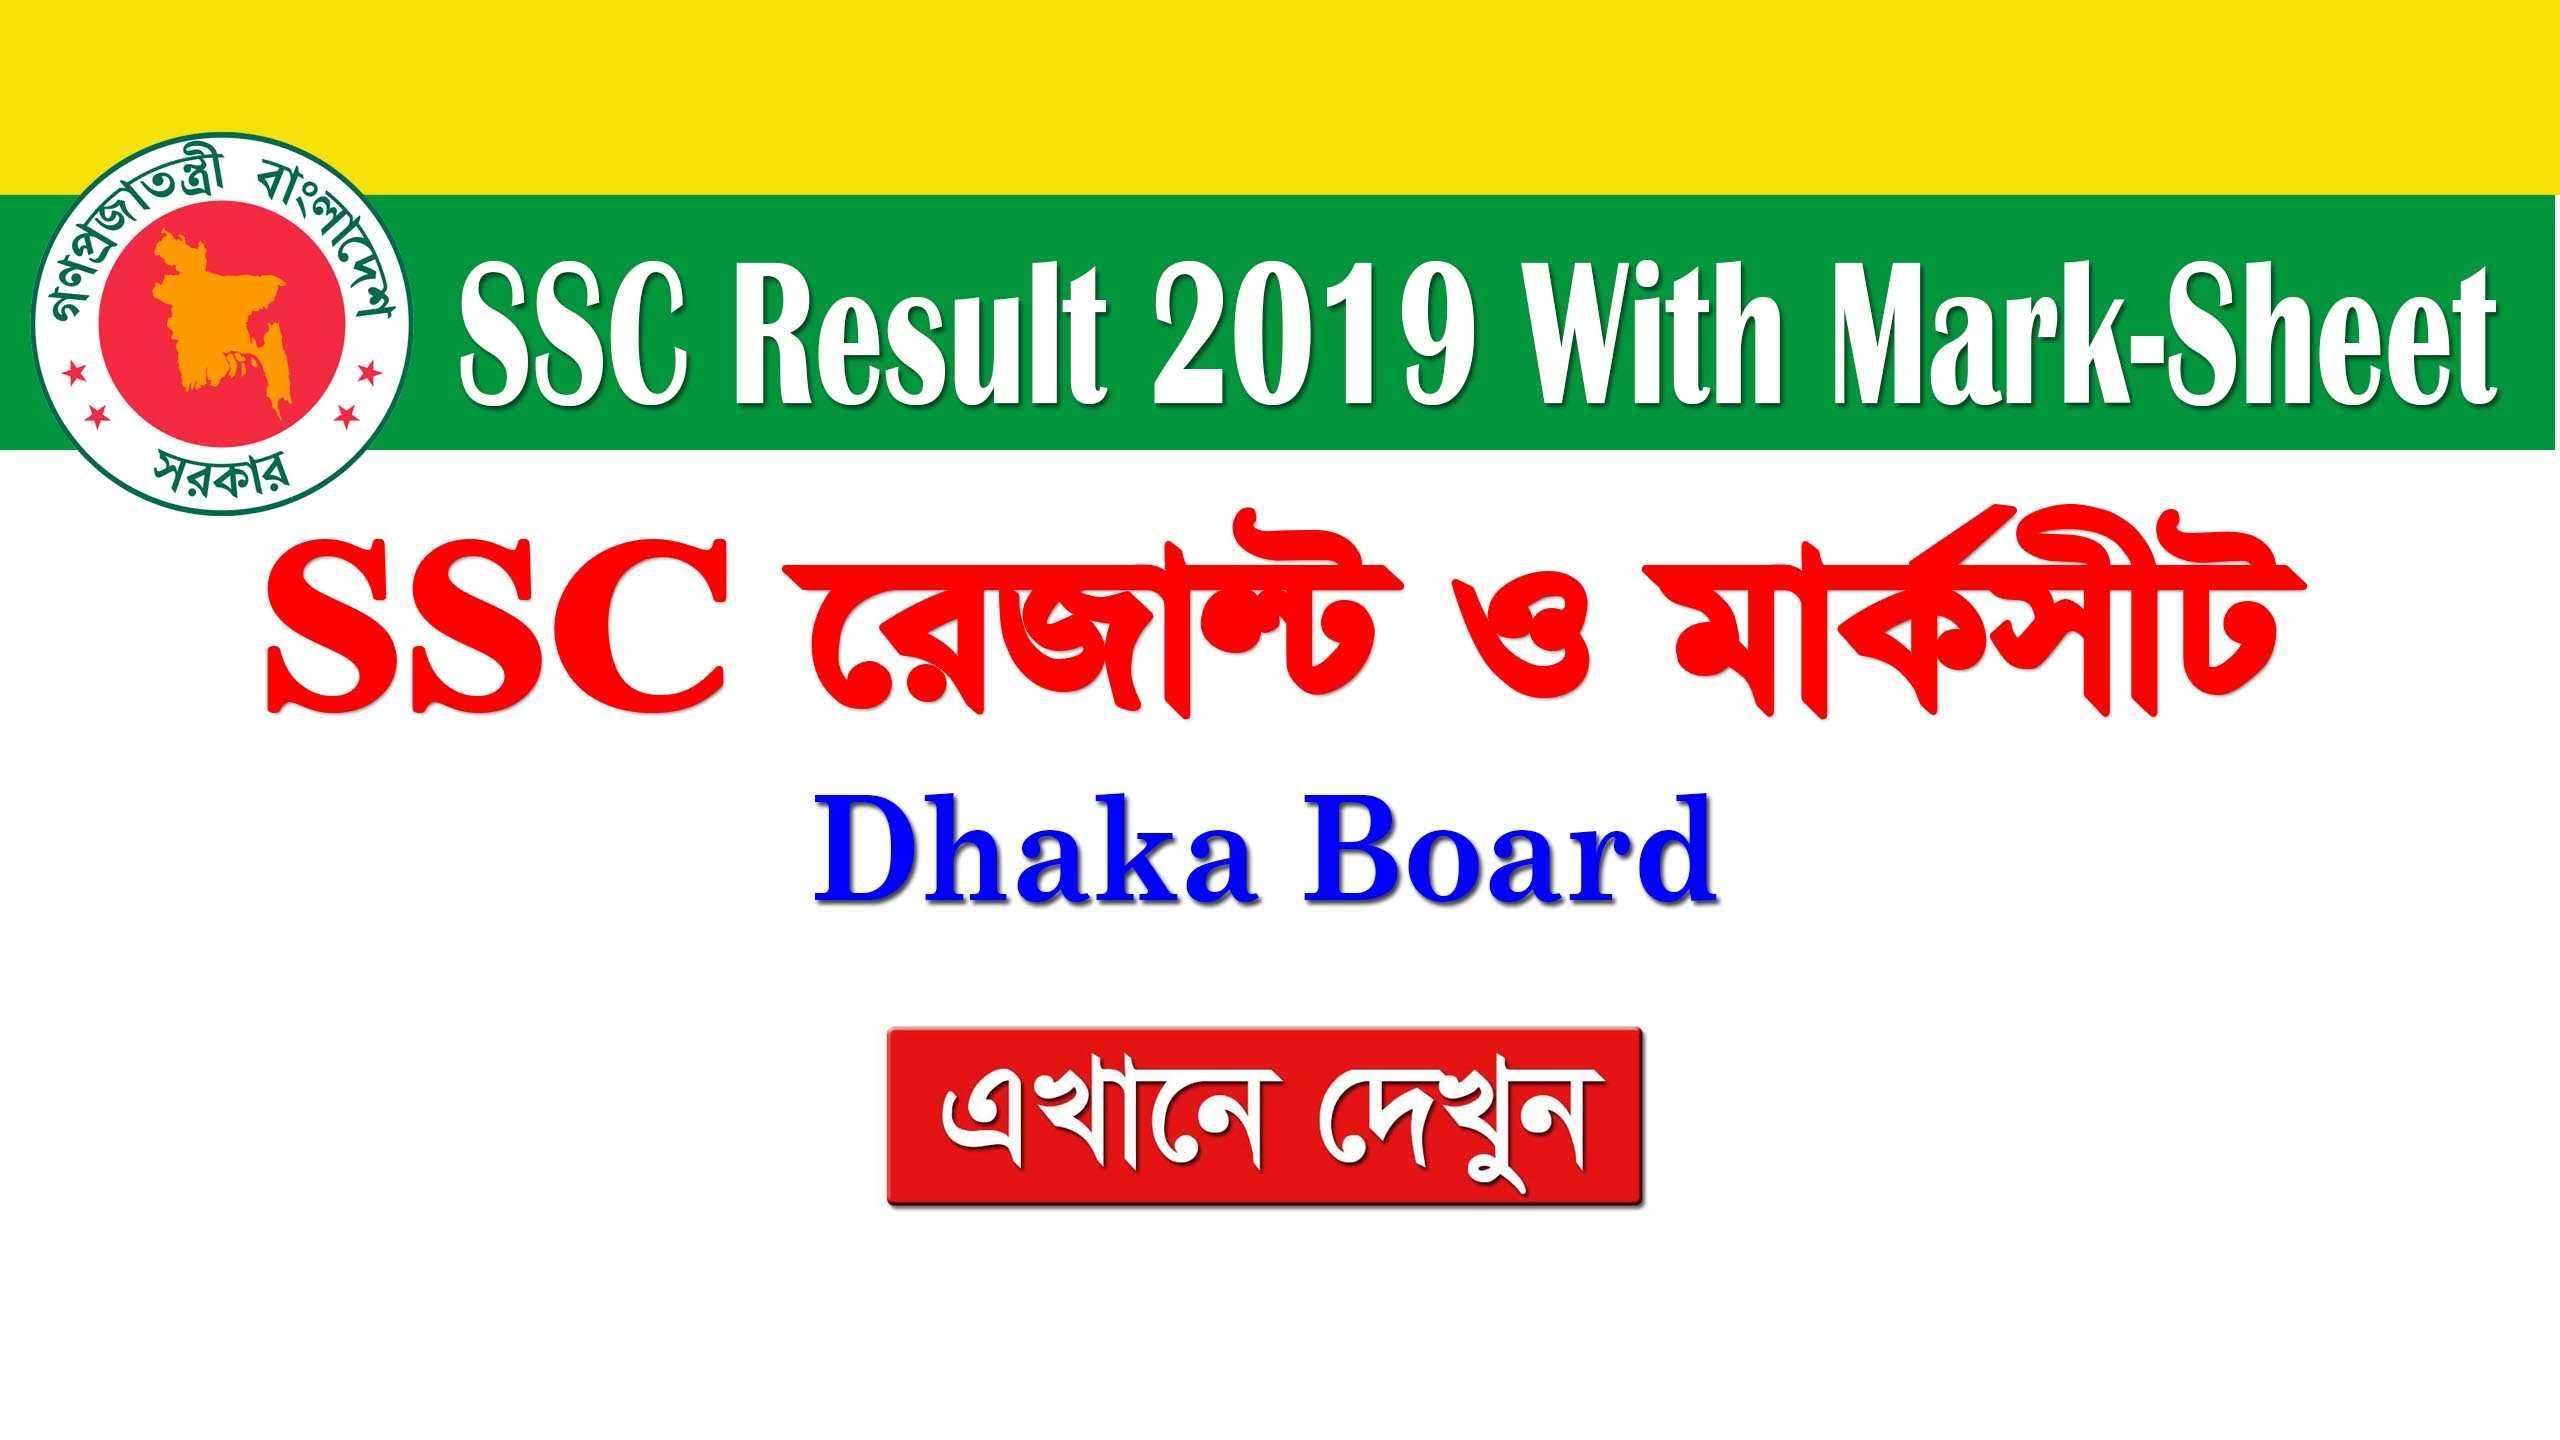 SSC Result 2019 Dhaka Board - Education Board Result 6